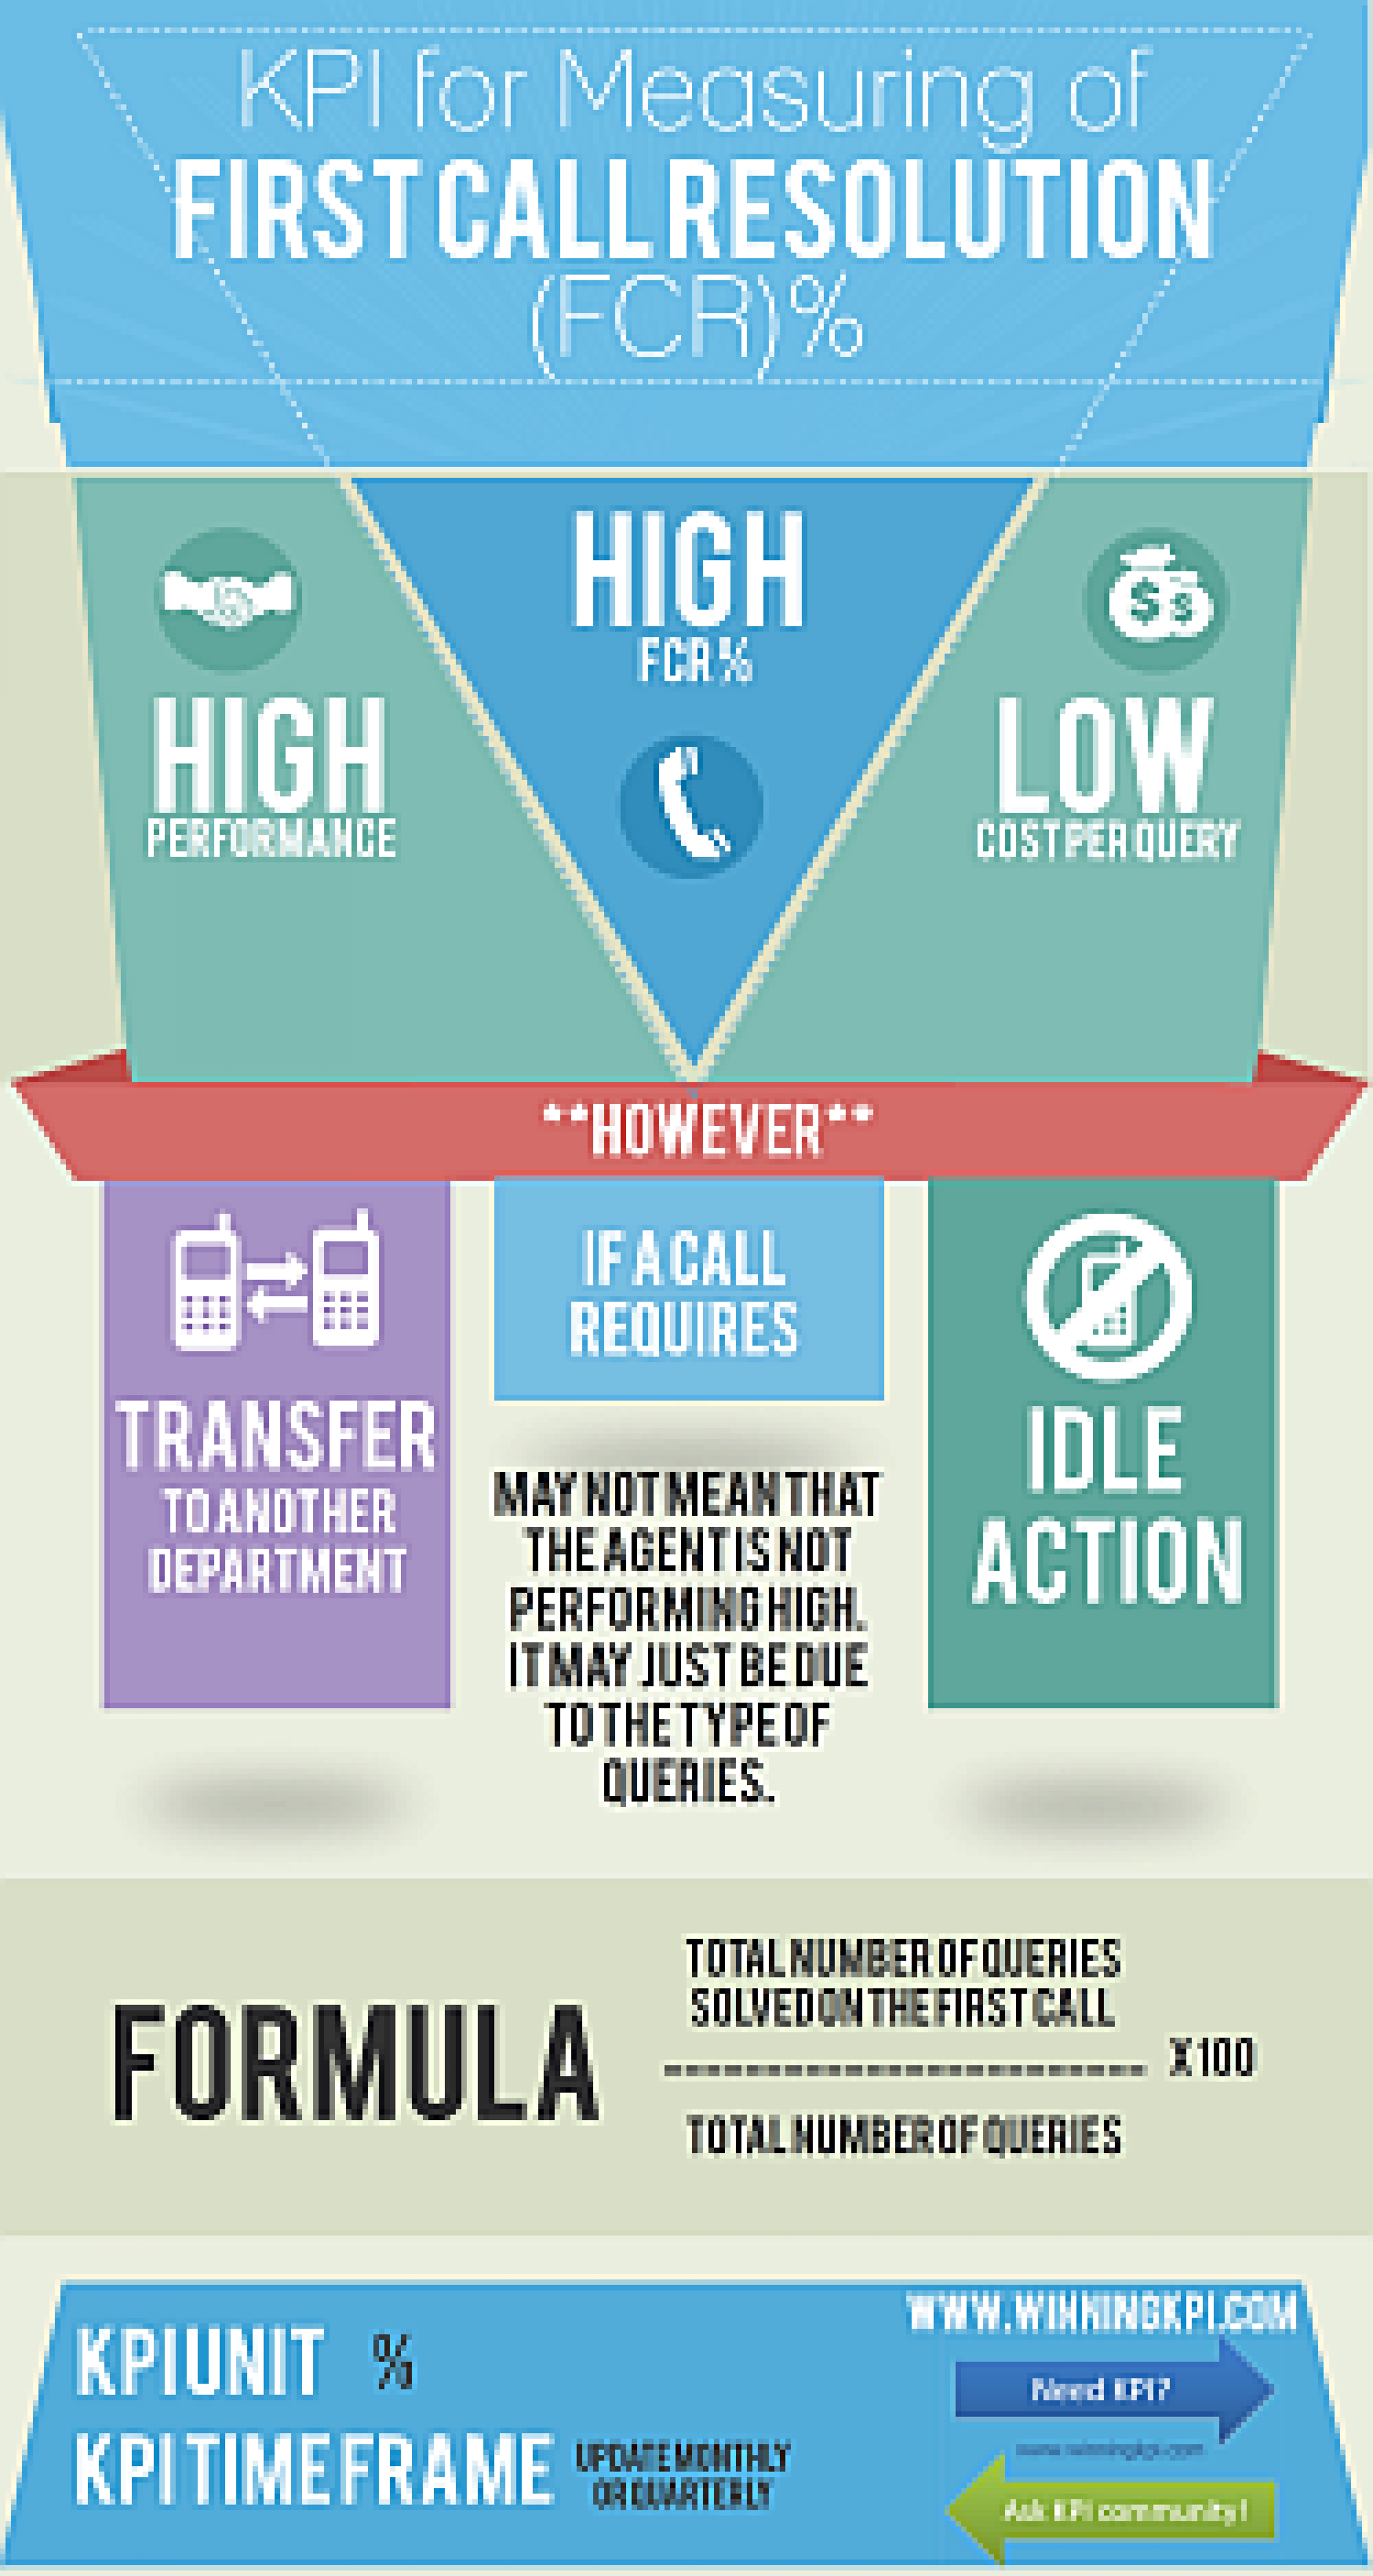 First call resolution for call center Infographic